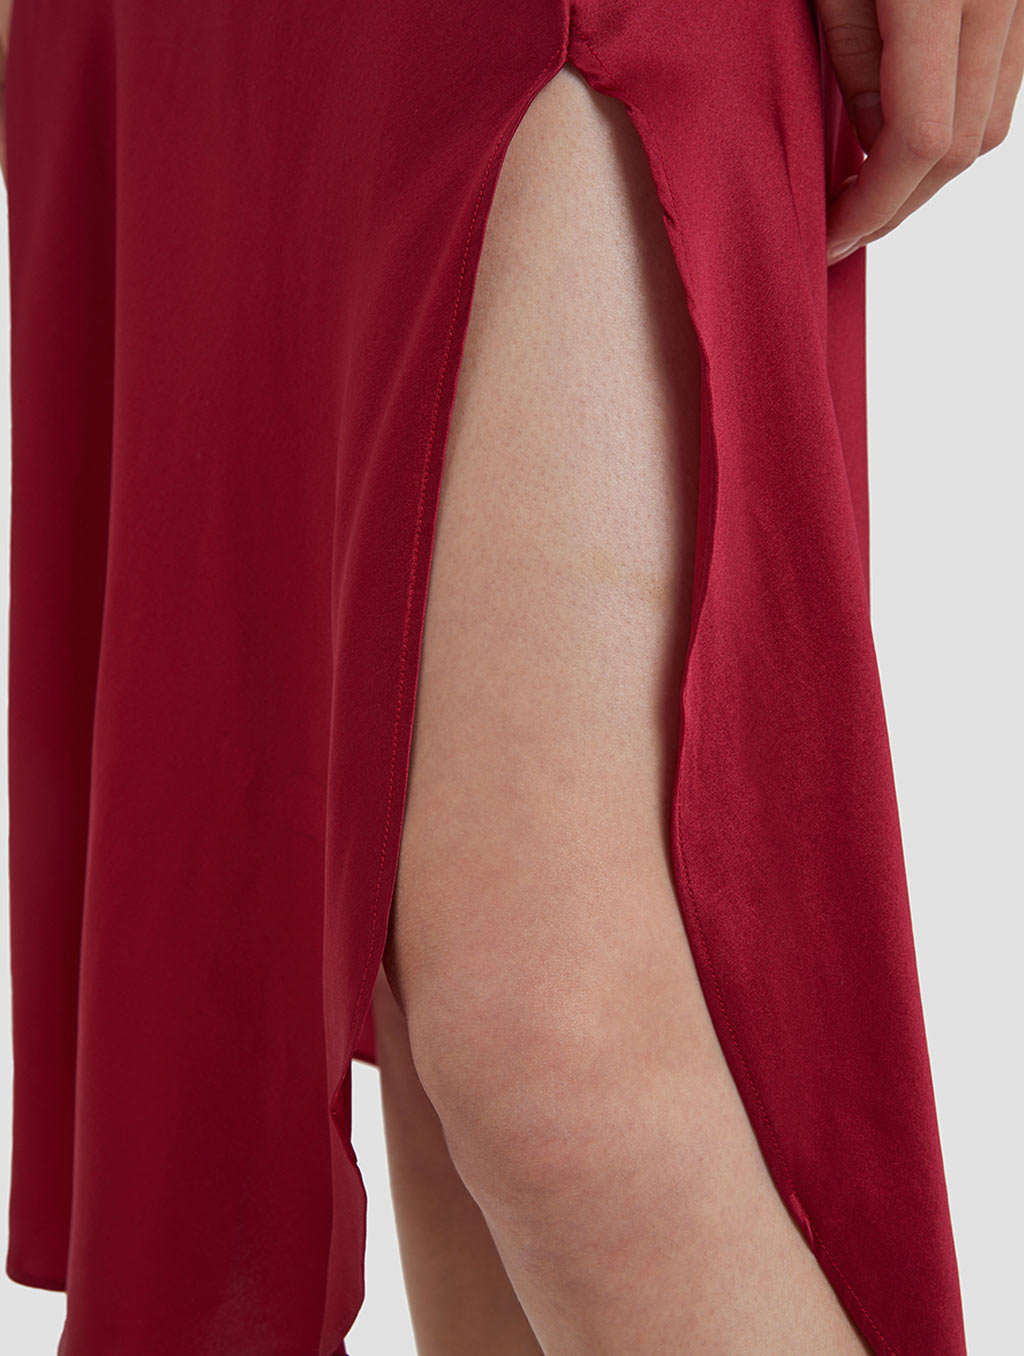 Cowl Neck Srips Dress -detail- red1